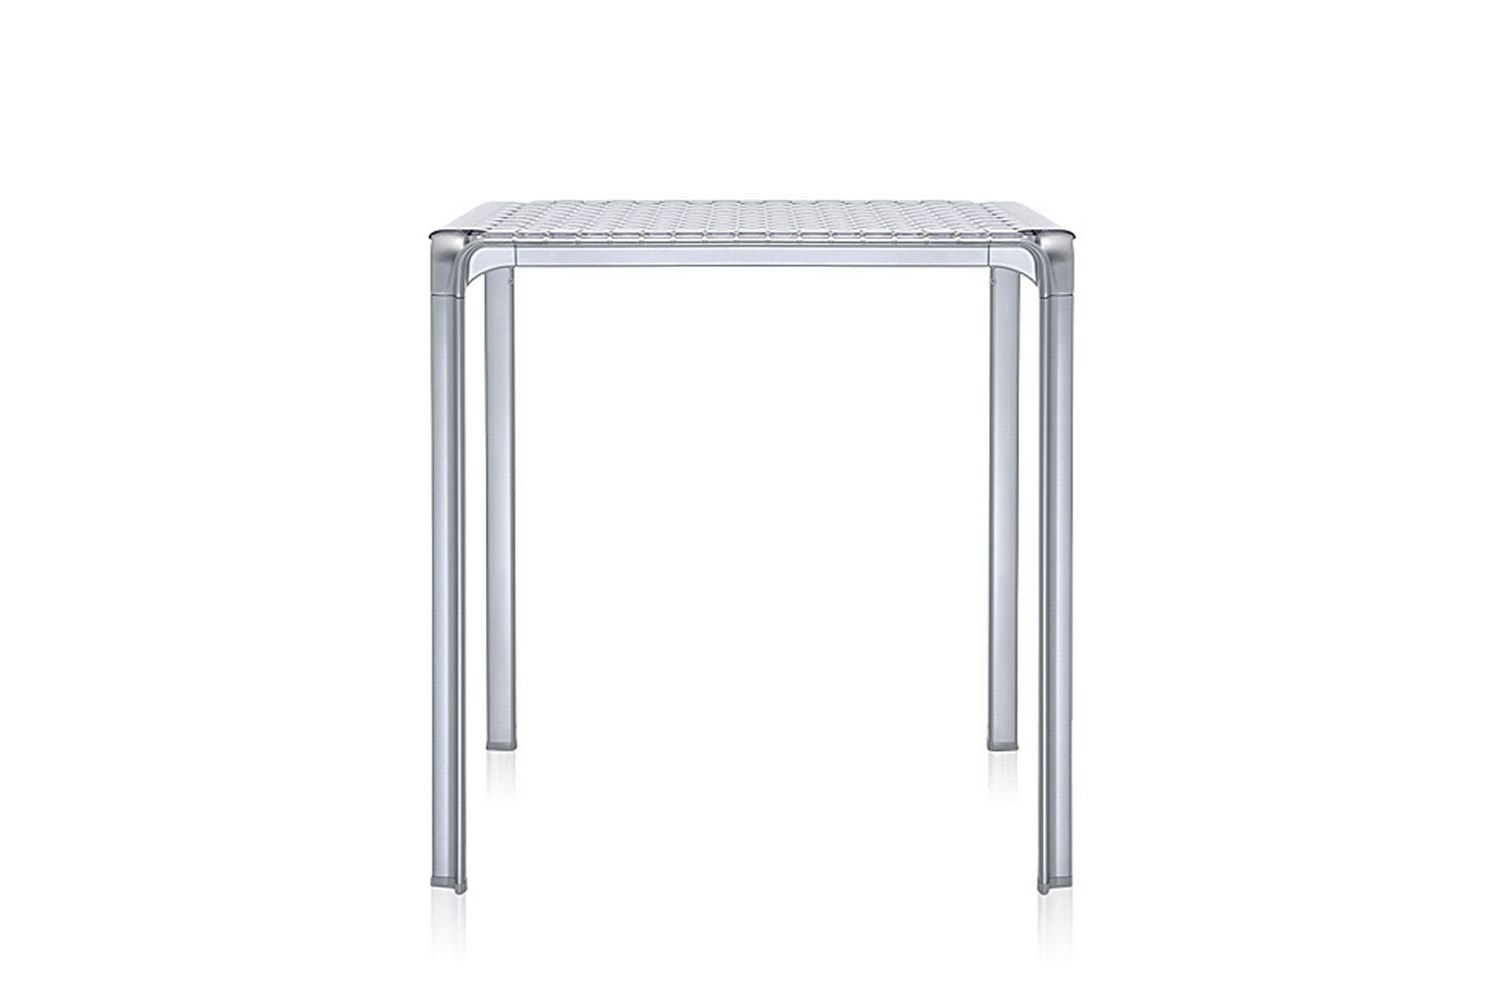 Ami Ami Table by Tokujin Yoshioka for Kartell